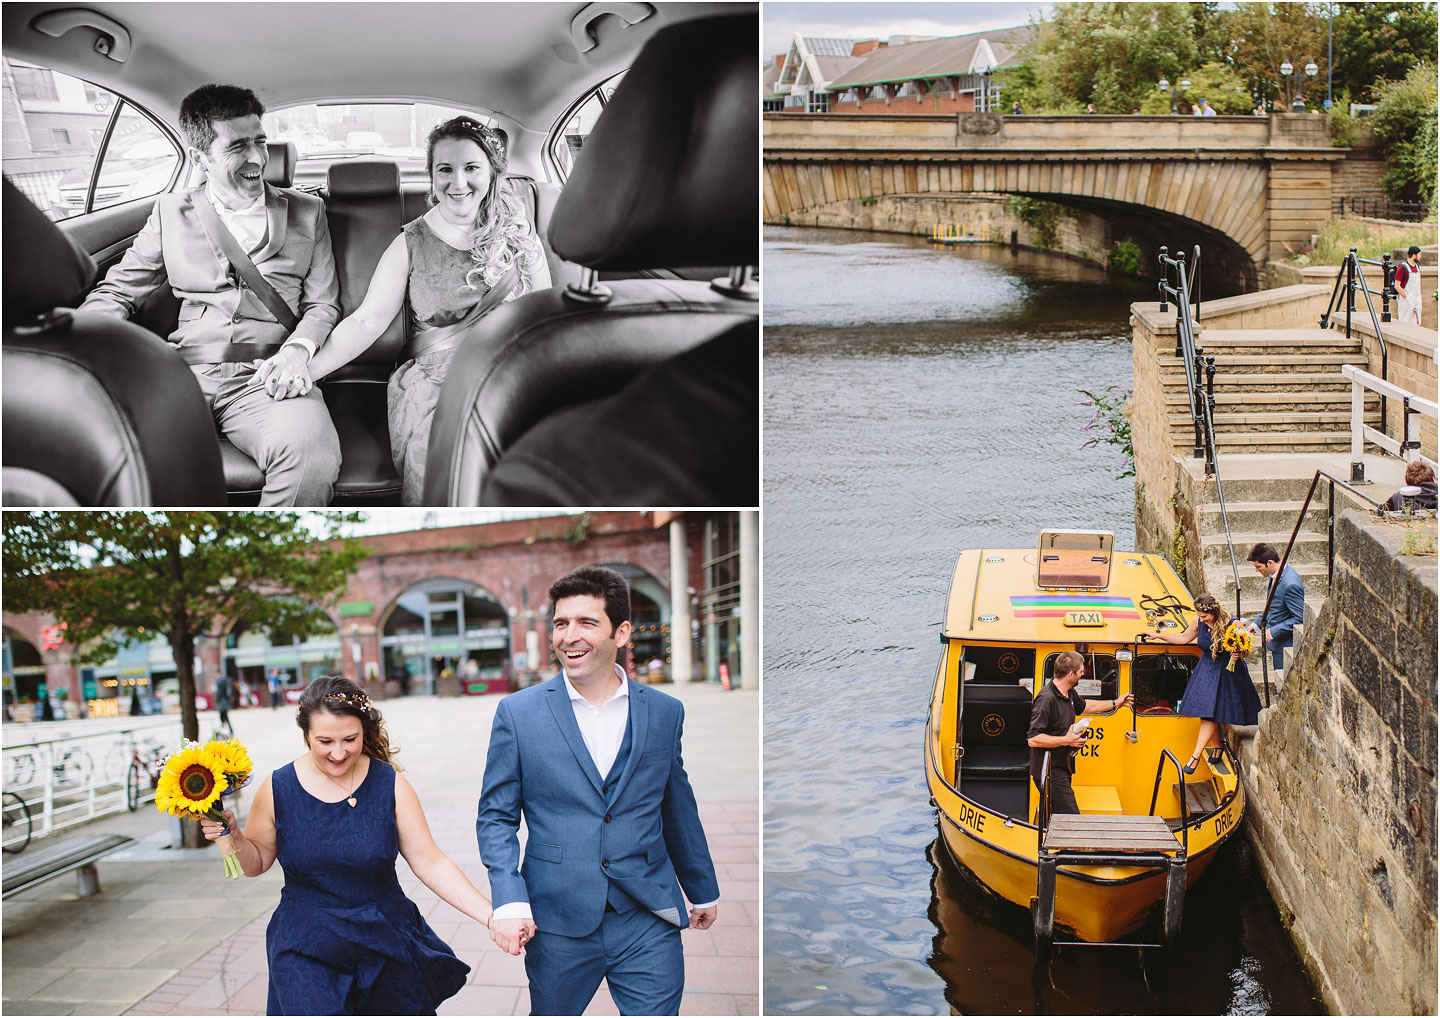 Wedding Photography on the River Aire Water Taxi in Leeds